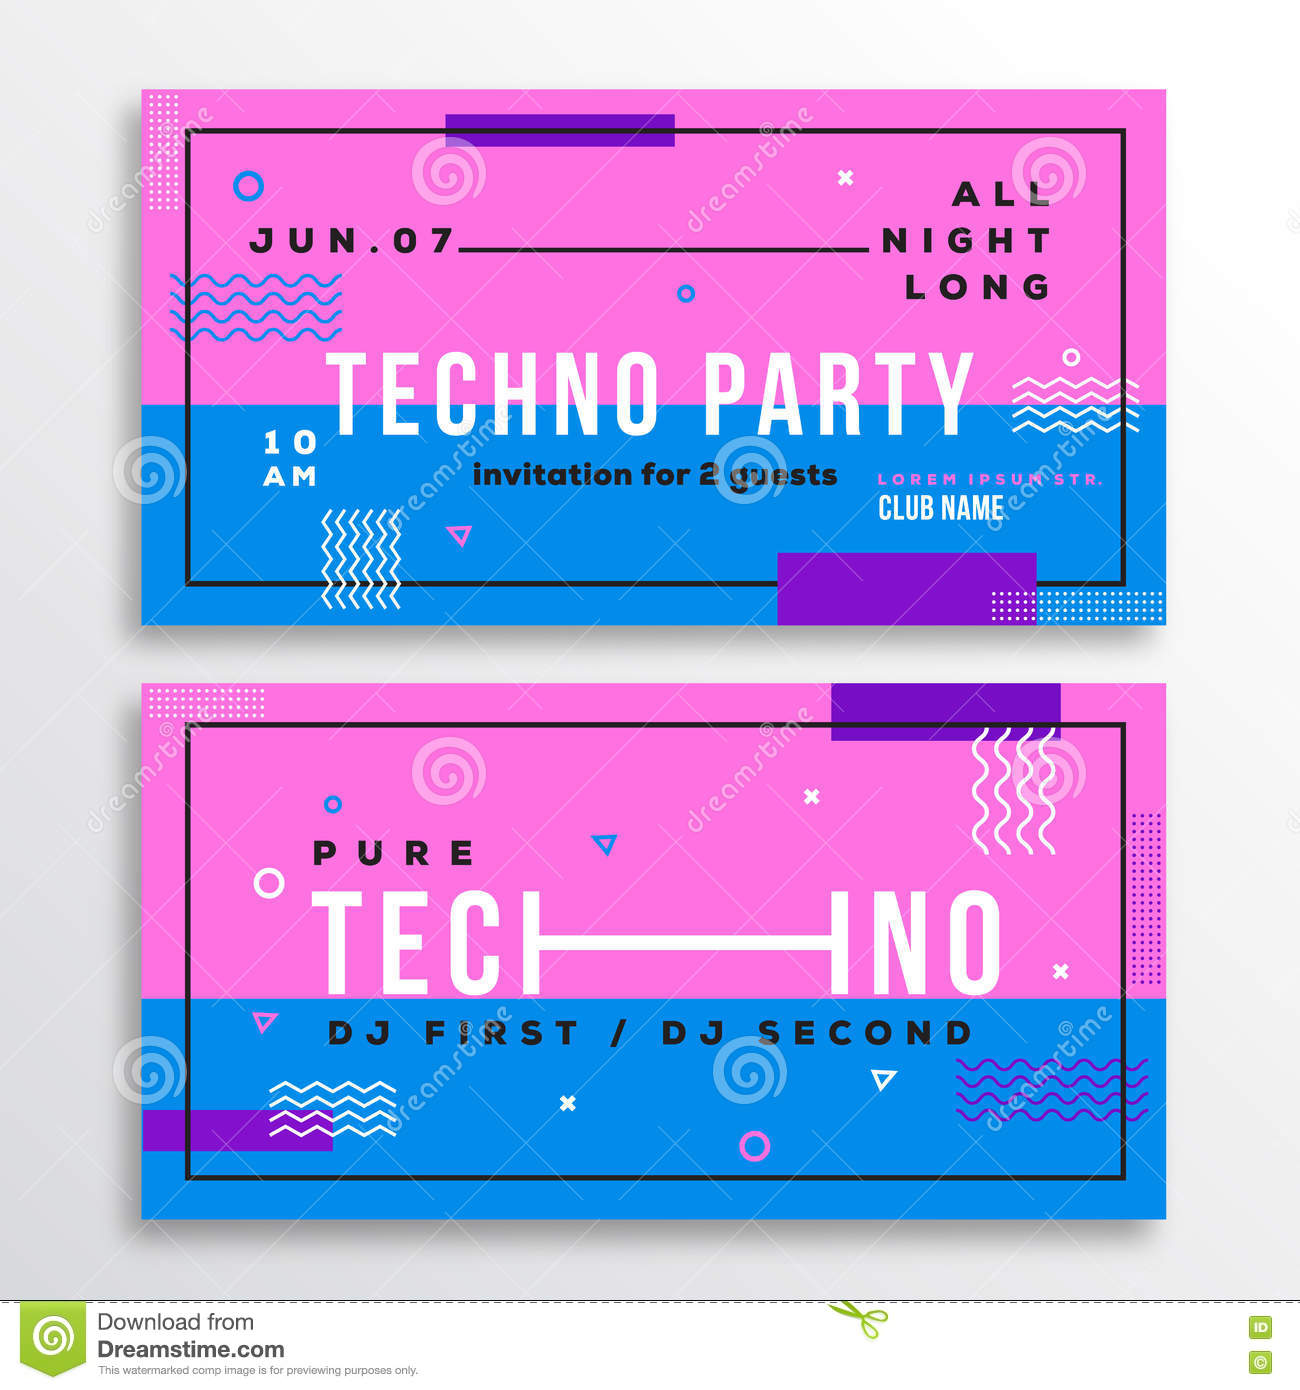 Night Techno Party Club Invitation Card Or Flyer Template. Modern Abstract  Flat Swiss Style Background With Decorative